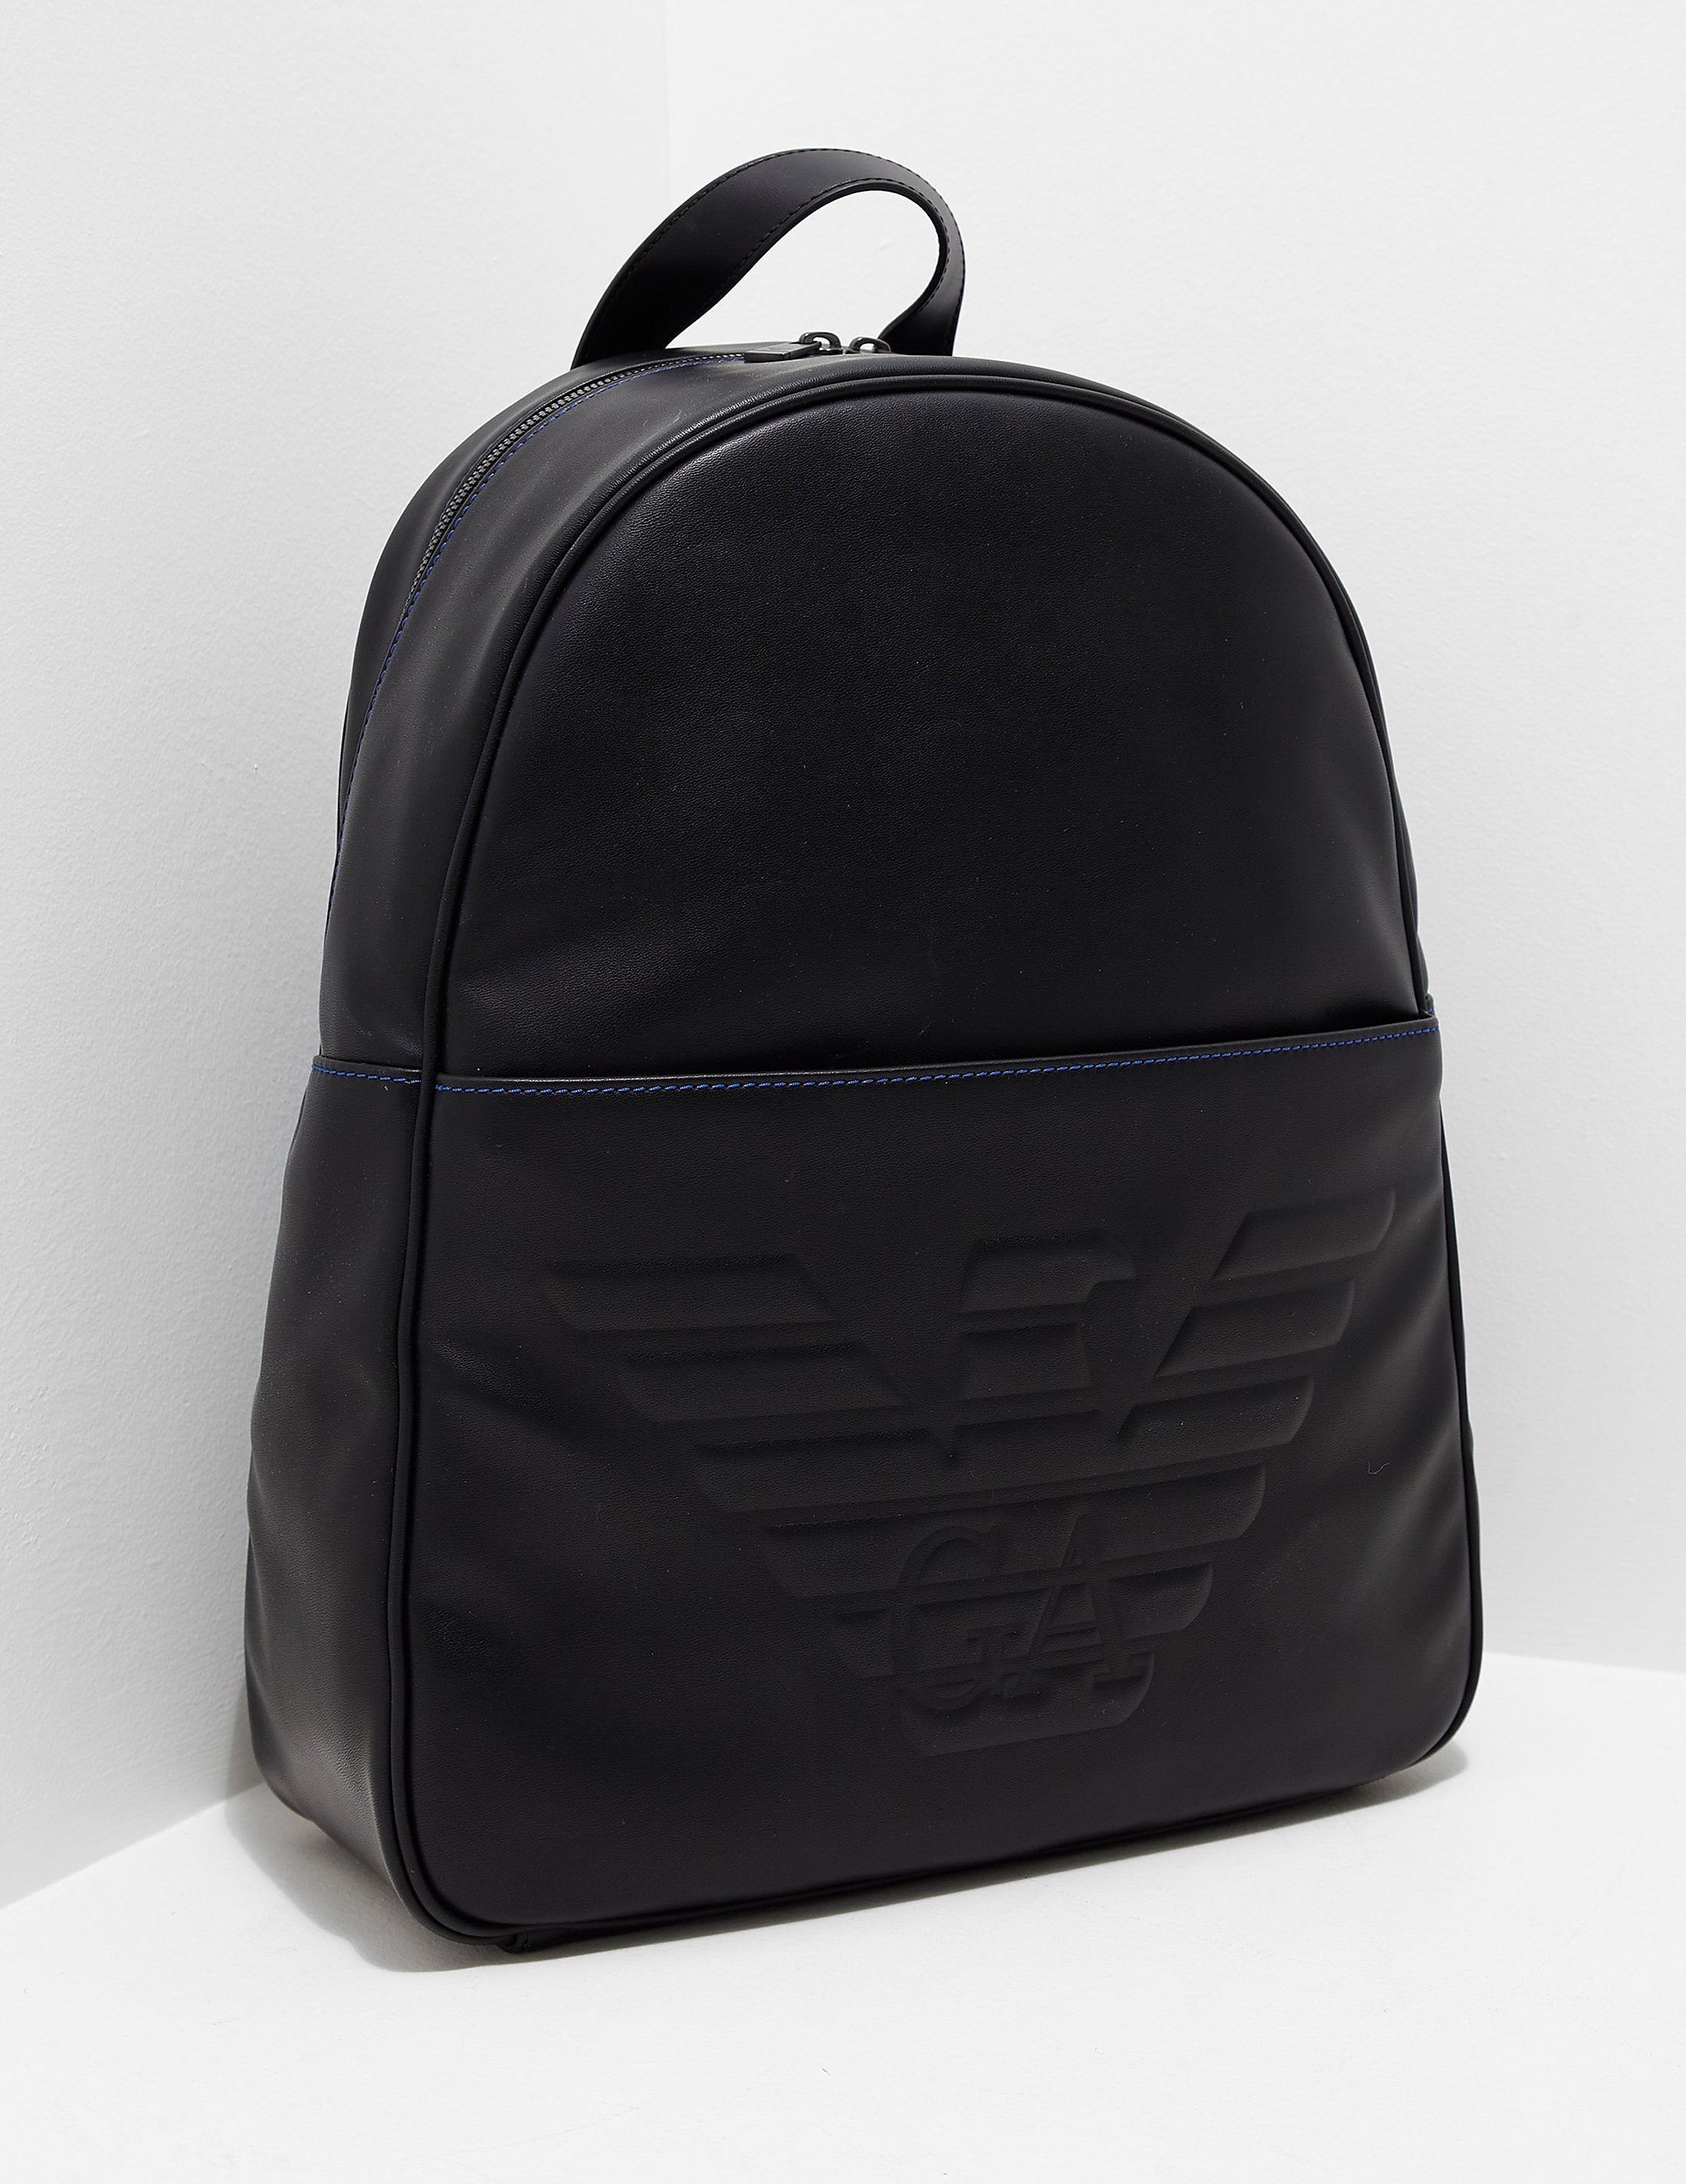 Emporio Armani Eagle Backpack